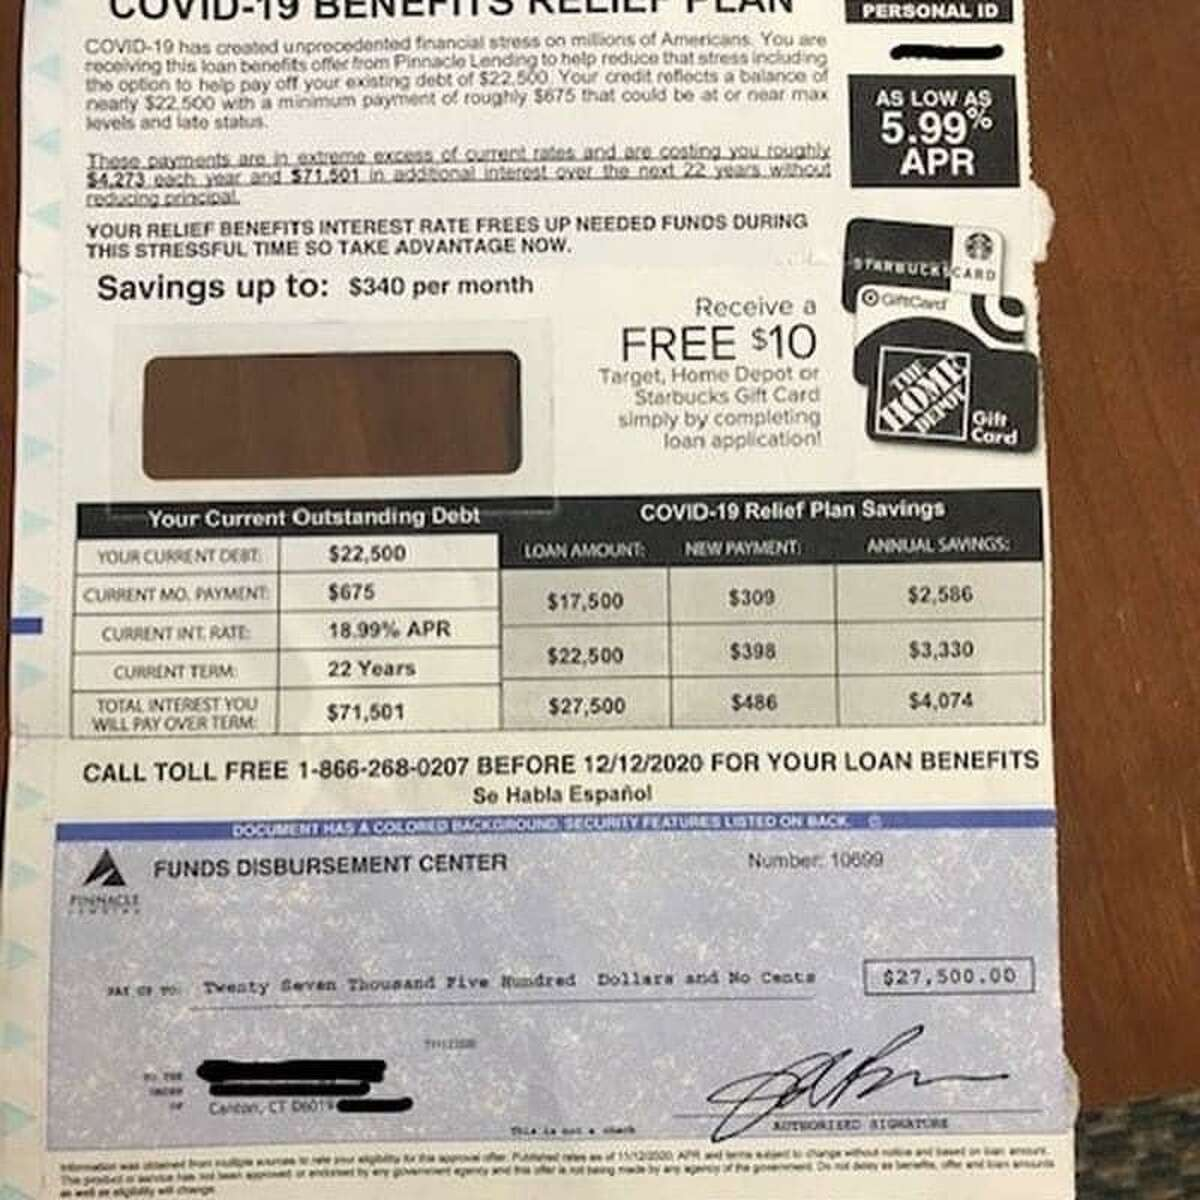 Police believe this mailer sent to a Canton resident is a fraudulent scam, and are warning residents to be on the lookout for suspicious offers during the COVID-19 pandemic